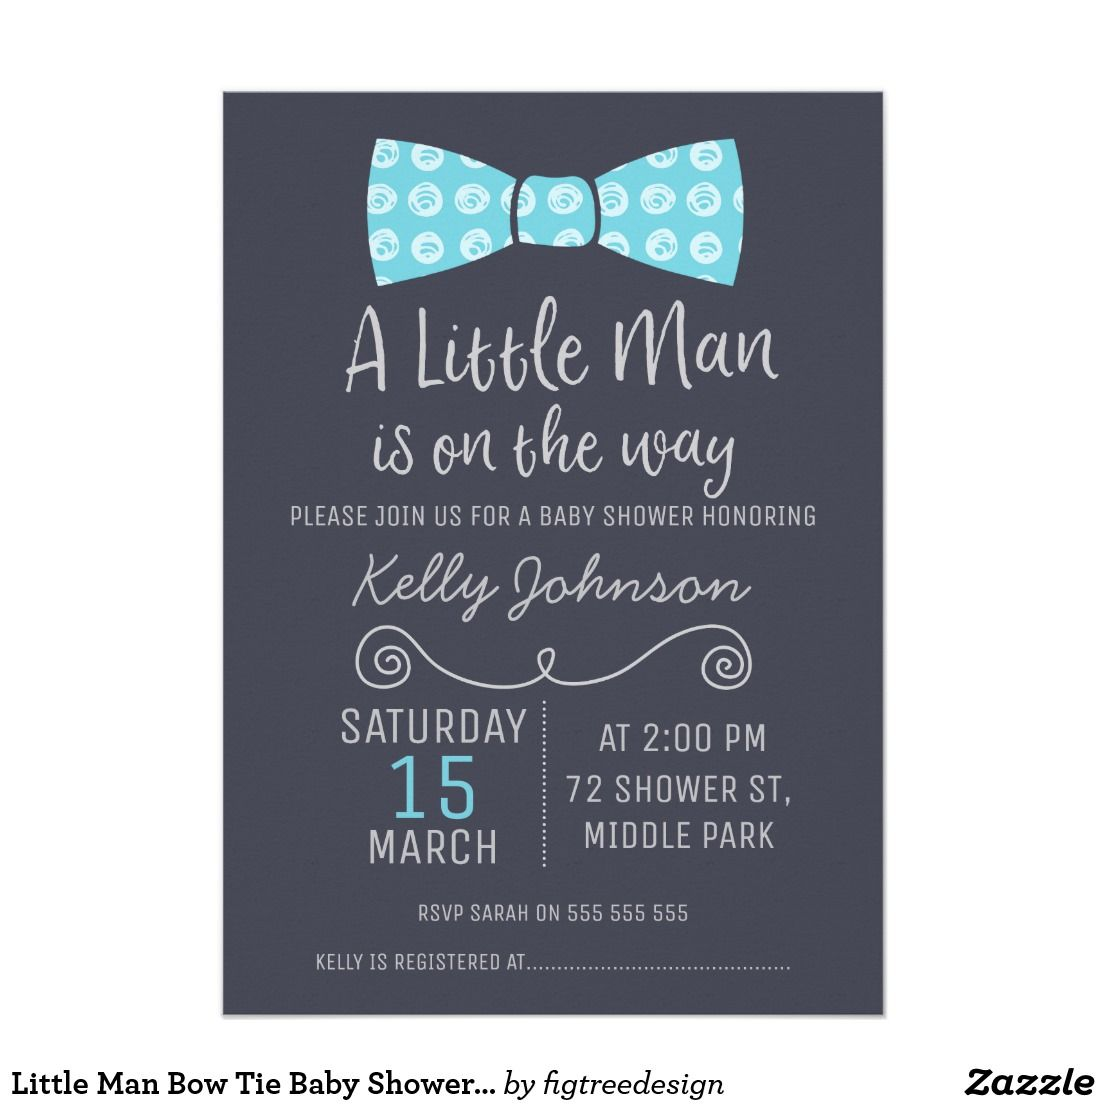 Little Man Bow Tie Baby Shower Invitation This little man bow tie ...